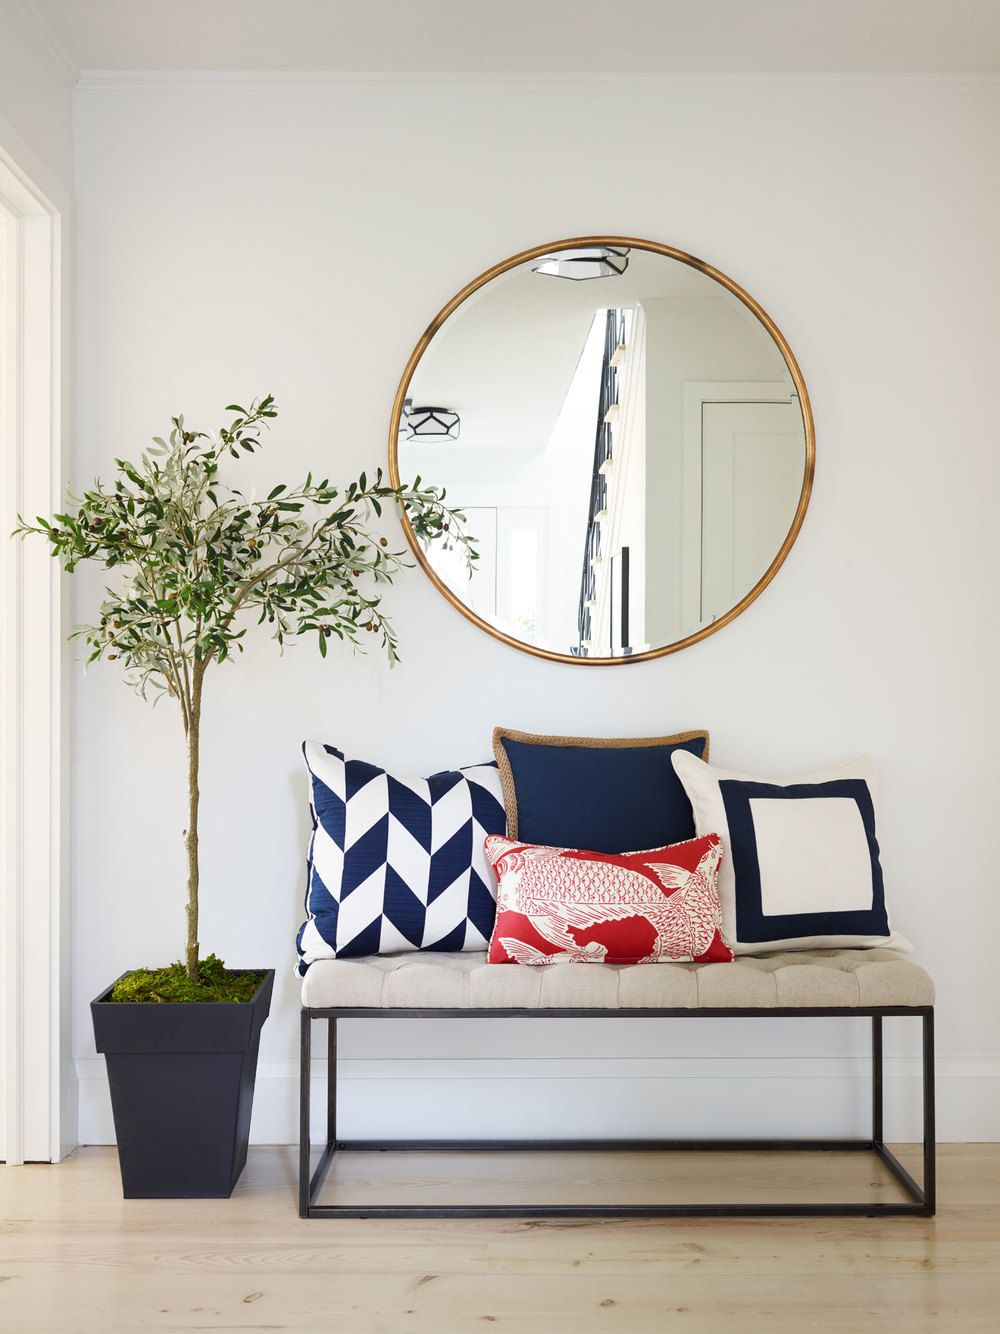 Round Mirror Entry Bench Foyer Ideas Entryway Decor Home Decor